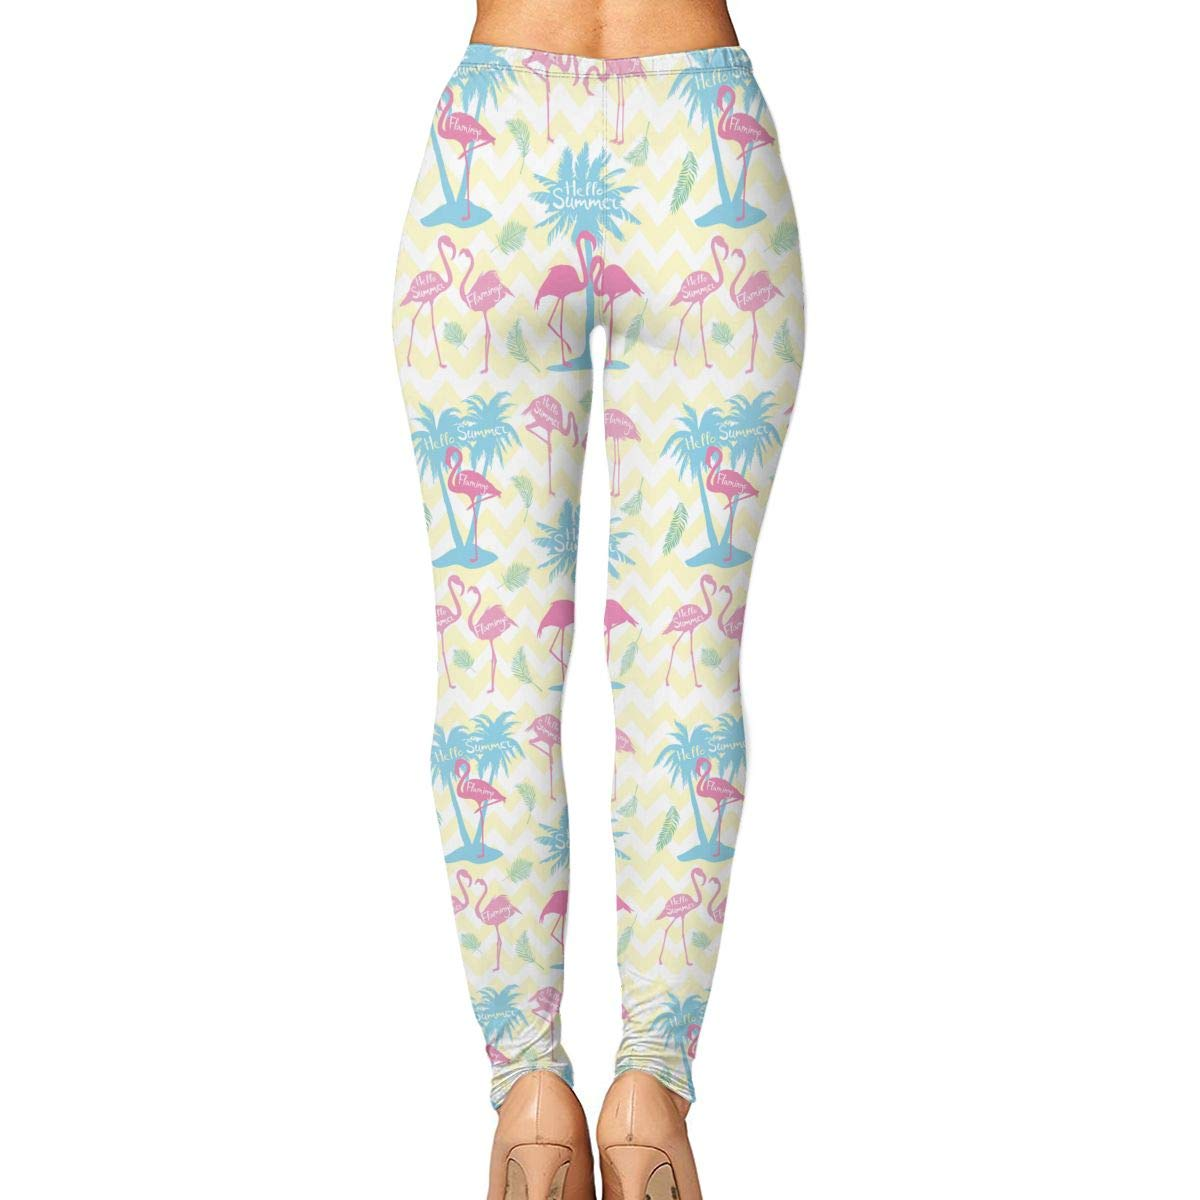 c2f28b7812c6b Amazon.com: Norman&New Women's Womens Pants Pink Flamingo Hello Summer Yoga  Leggings for Workout Running Fitness Sports Gym: Clothing